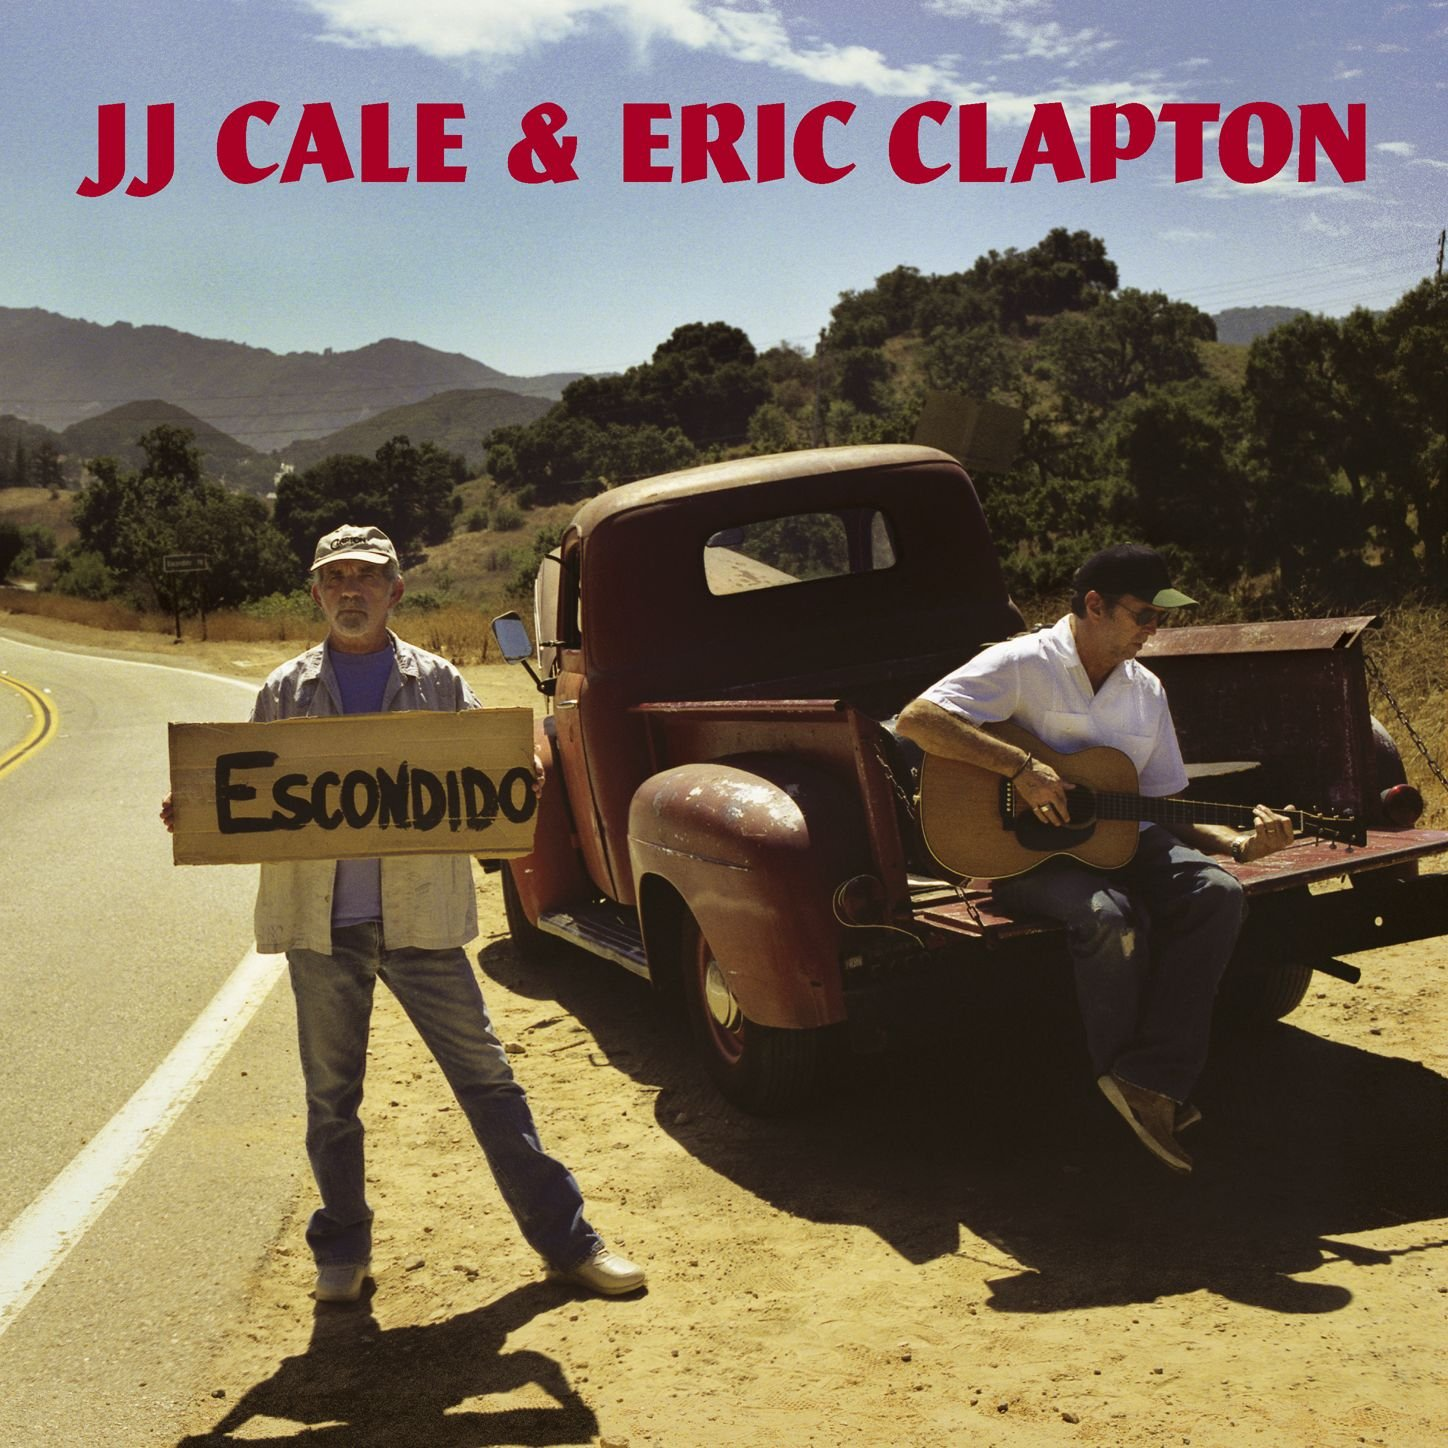 JJ Cale & Eric Clapton, The Road to Escondido